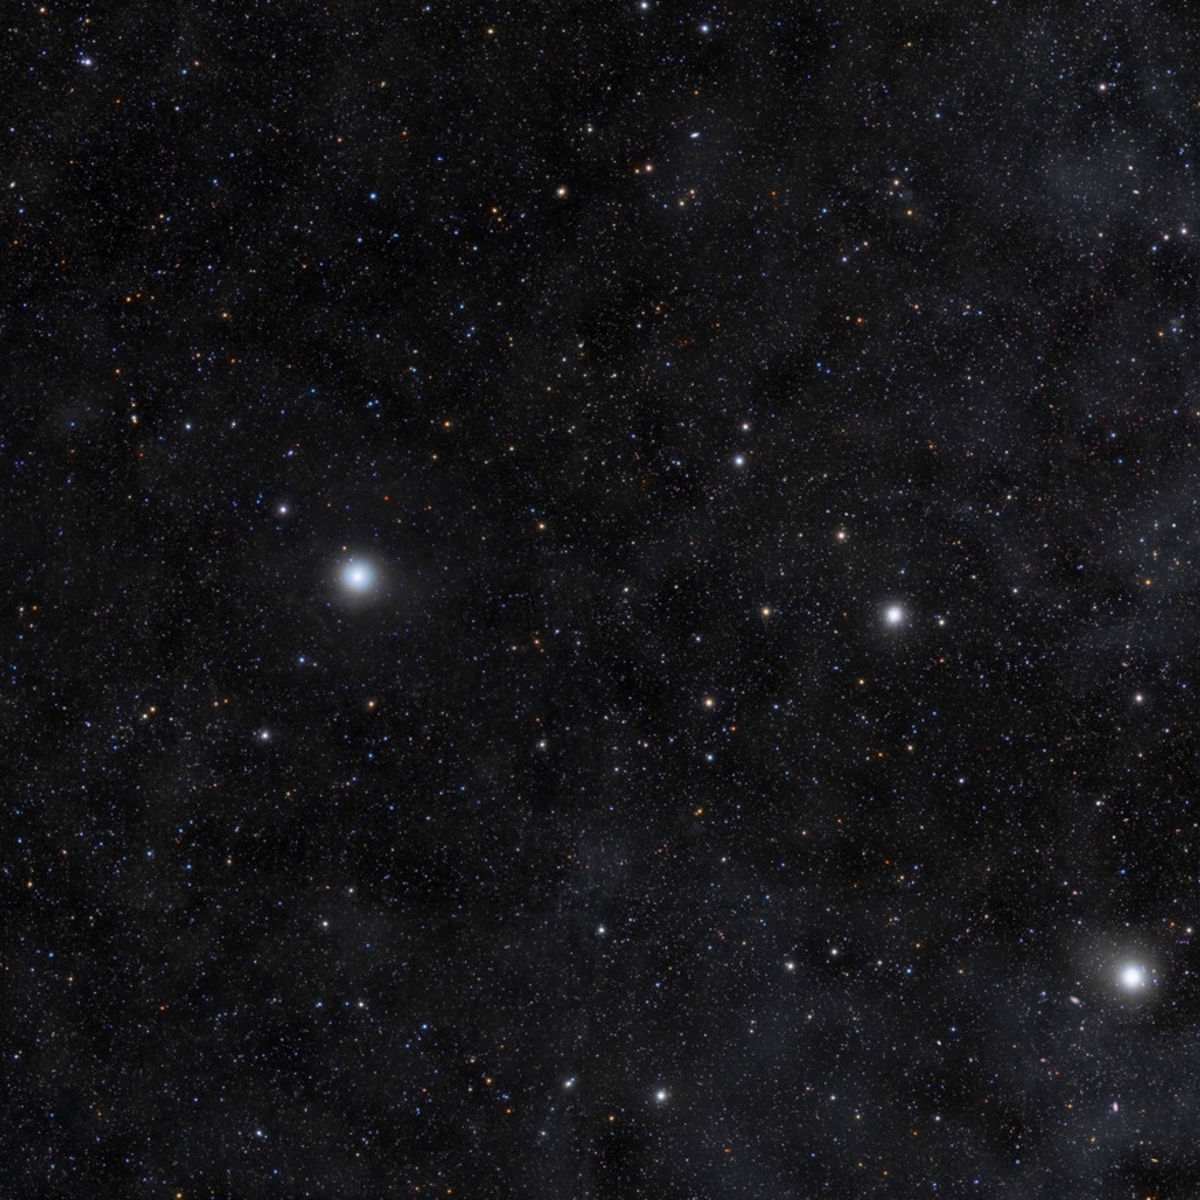 You may think you know the Big Dipper, but when you take a closer look it's not as familiar as you thought. Credit: Rogelio Bernal Andreo